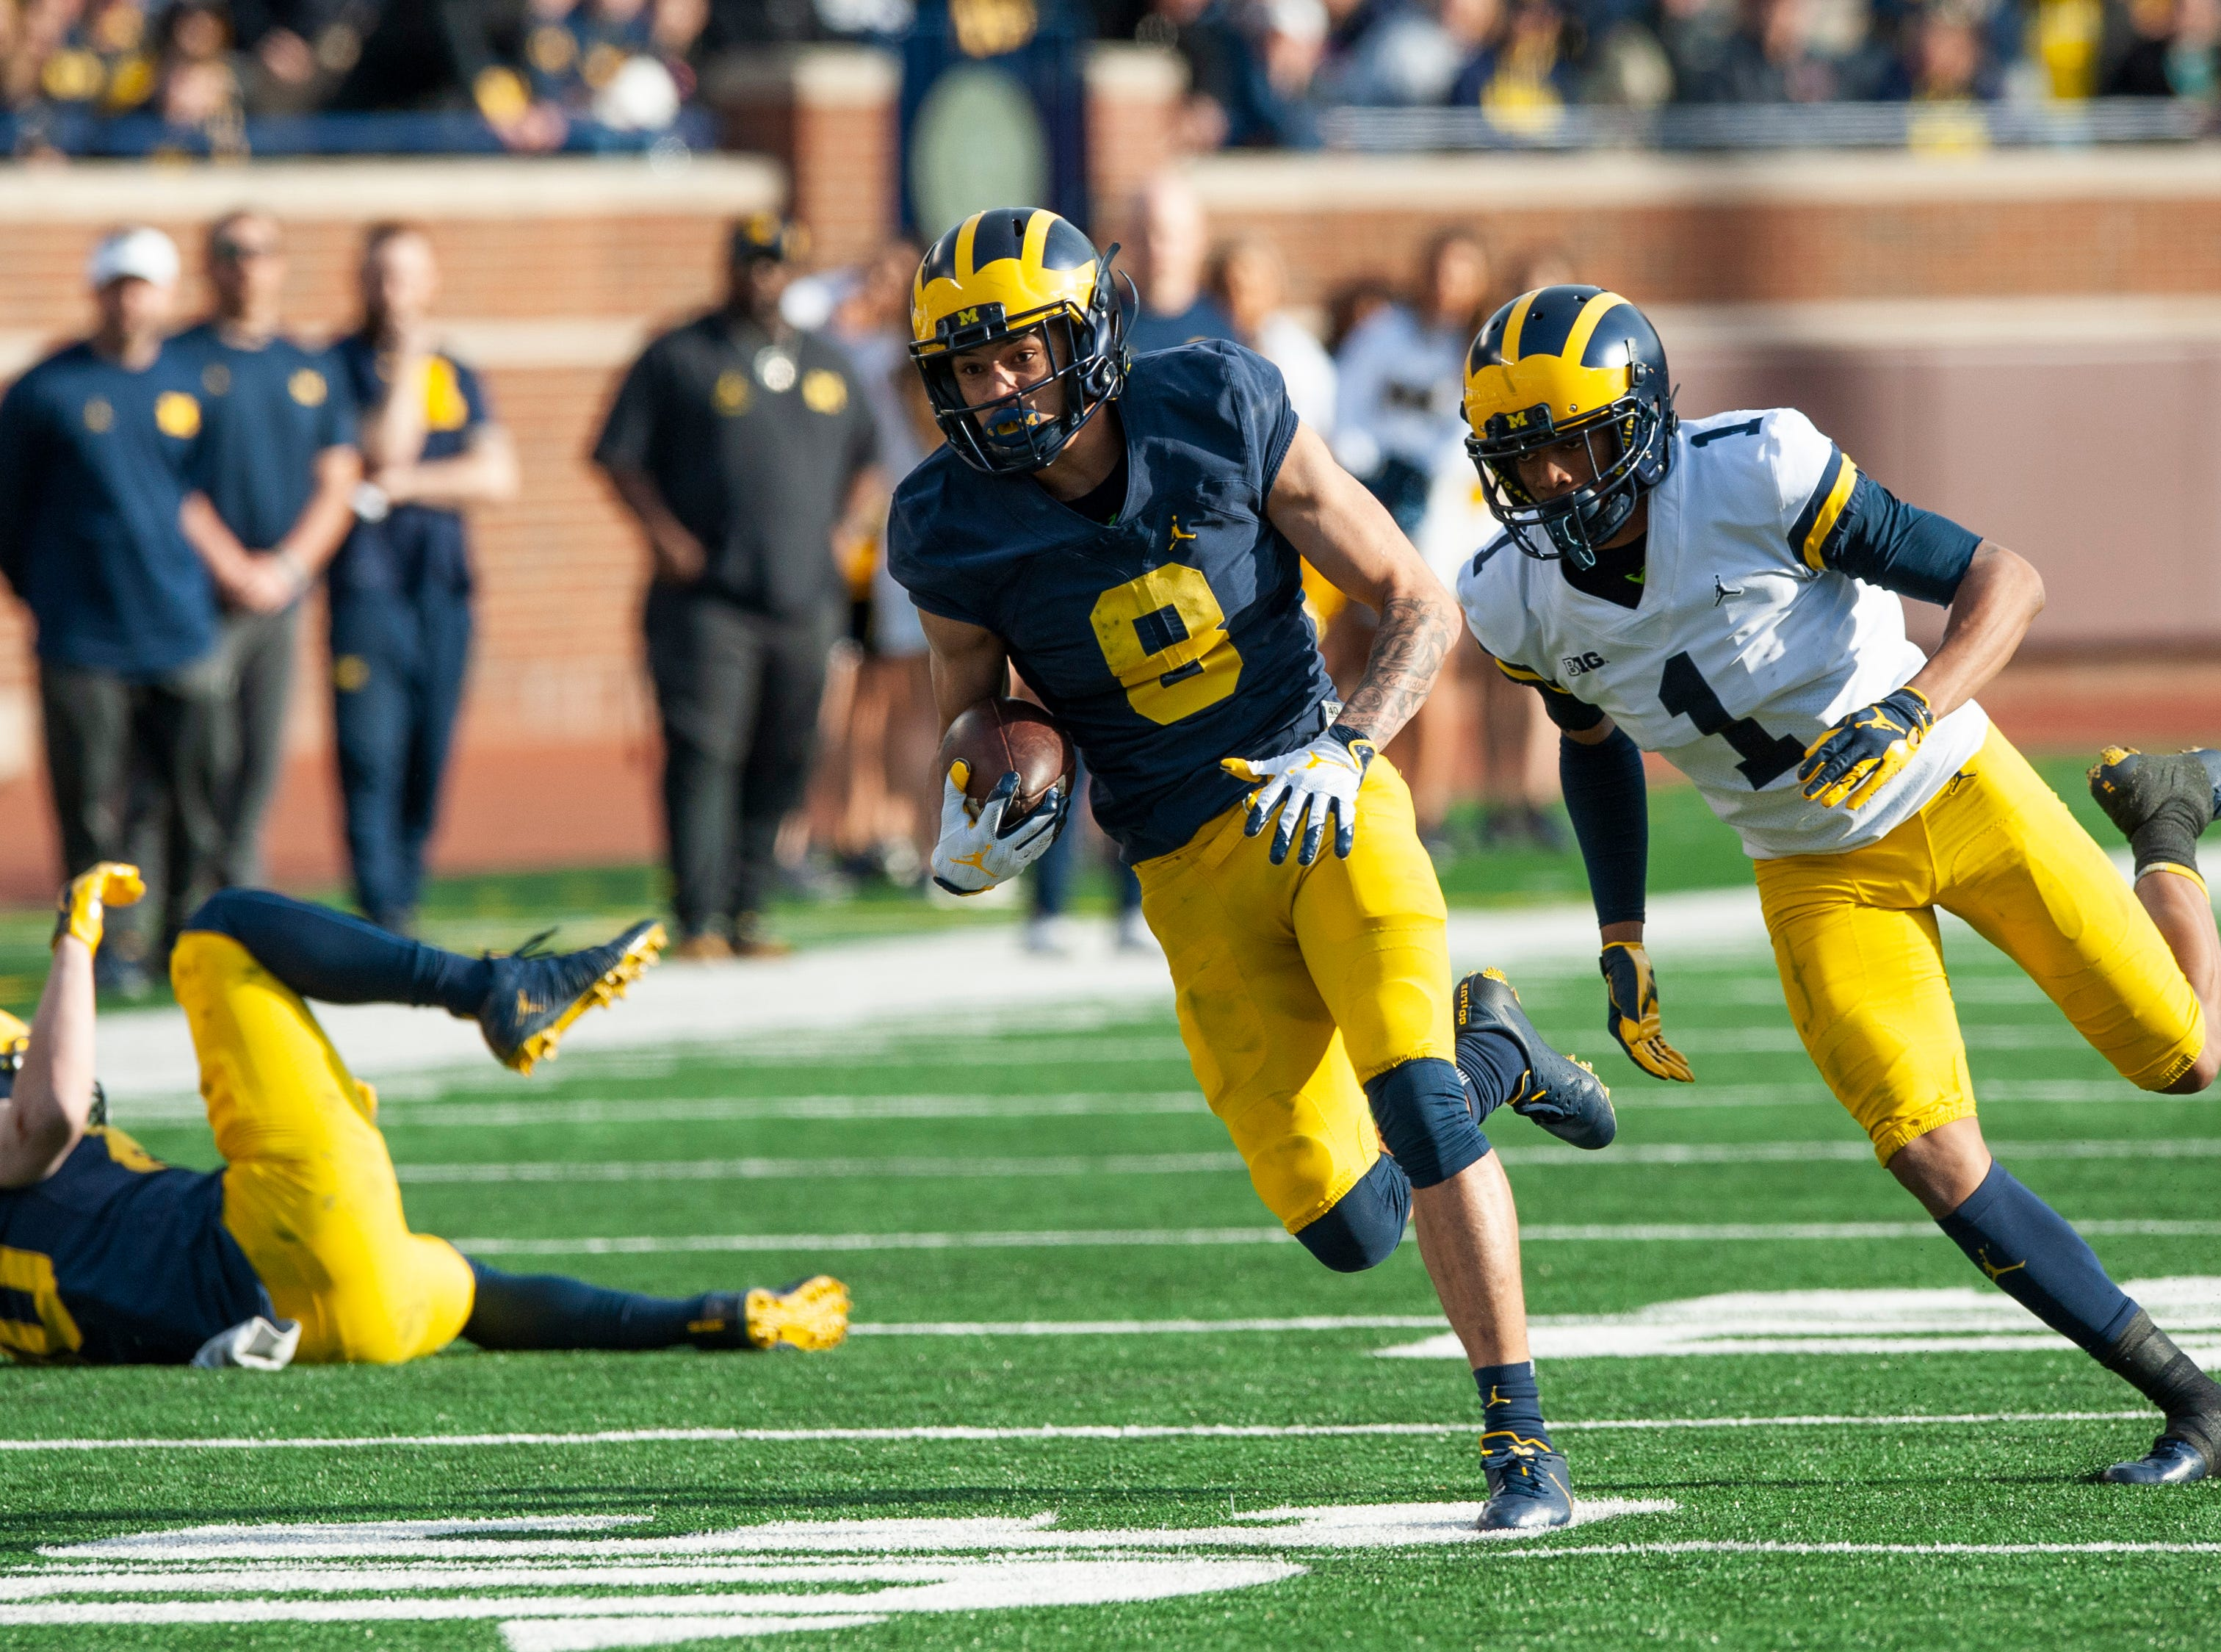 Michigan WR Ronnie Bell eludes DB Ambry Thomas on his way to the end zone with a touchdown reception.